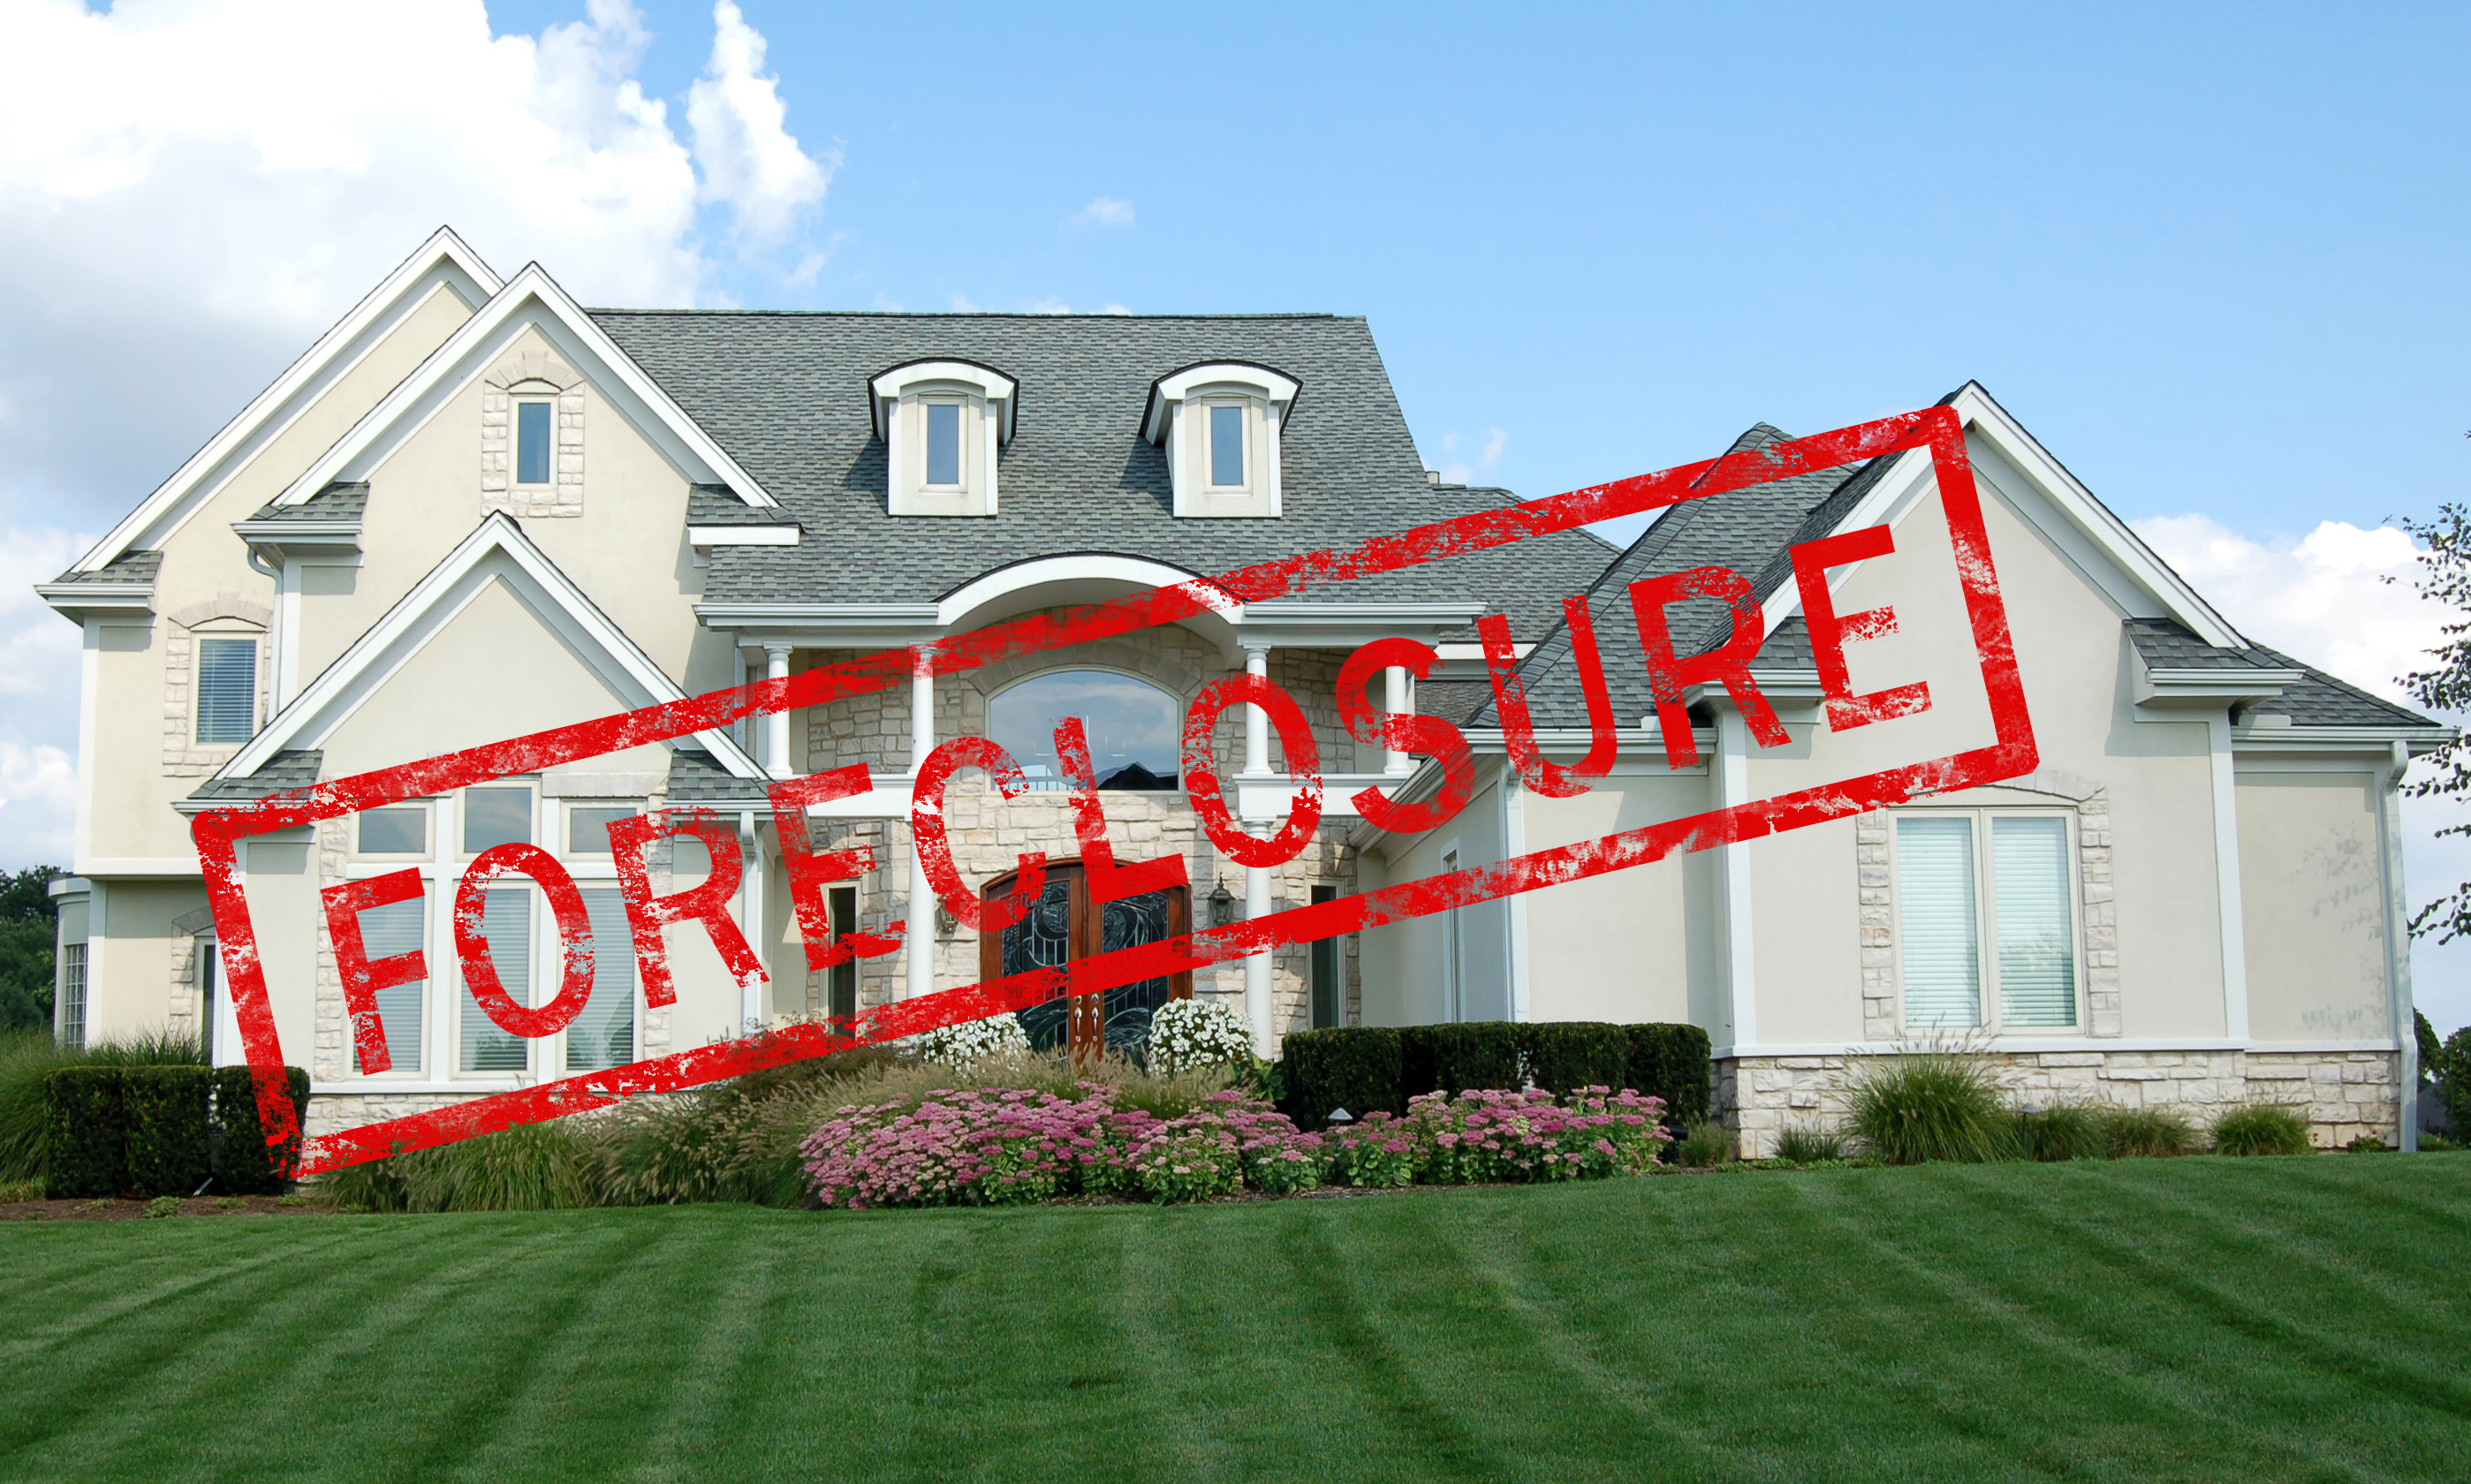 Call Allstate Appraisal, Inc.  to order valuations regarding Maricopa foreclosures